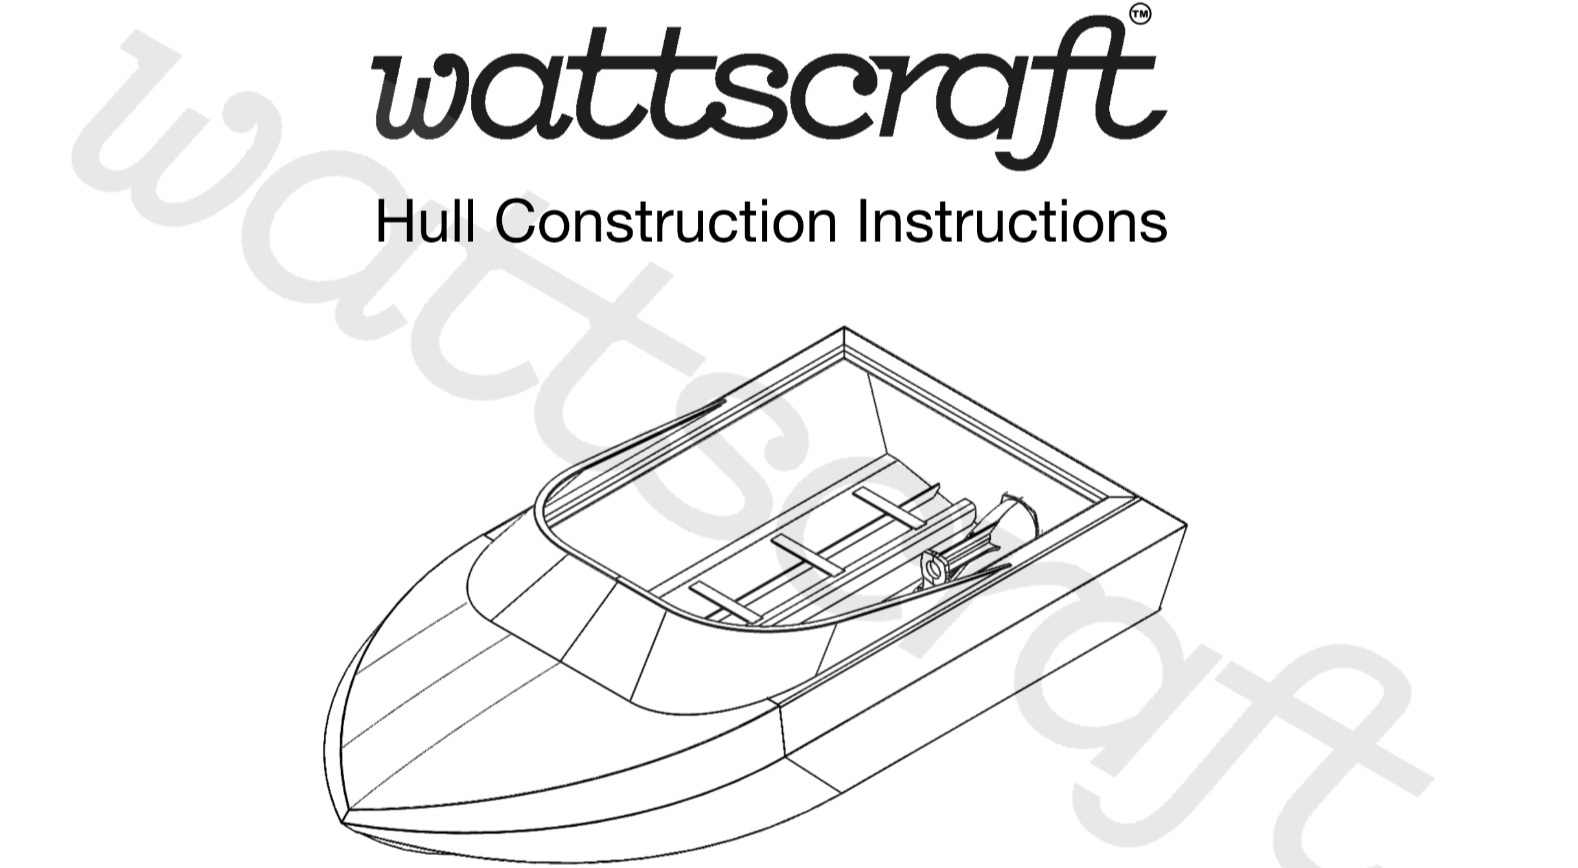 Download or view the construction instructions here